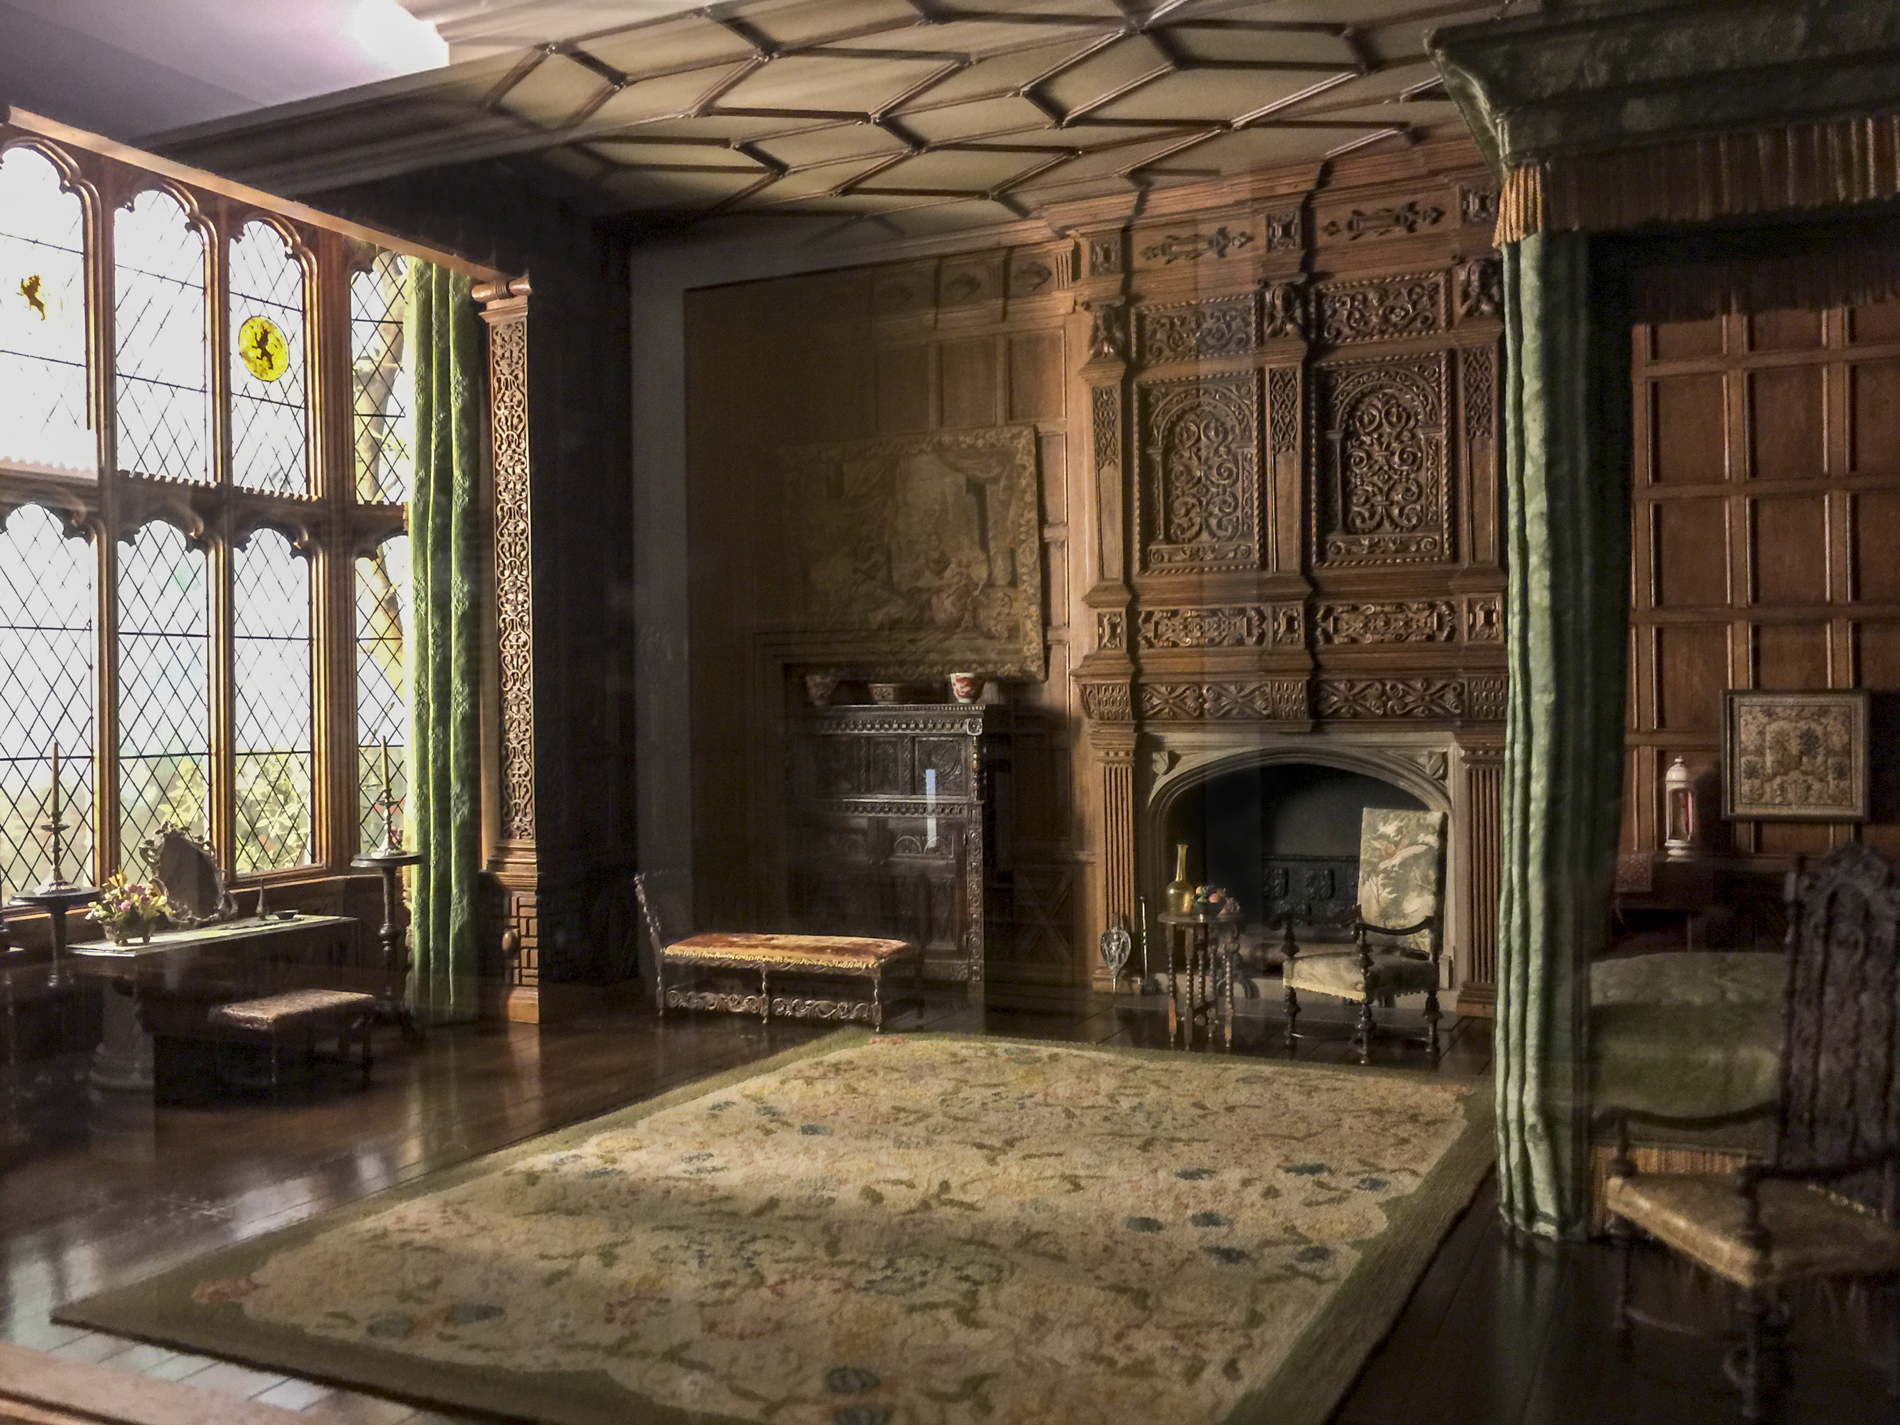 Tudor bedroom, Thorne Rooms, Art Institute of Chicago